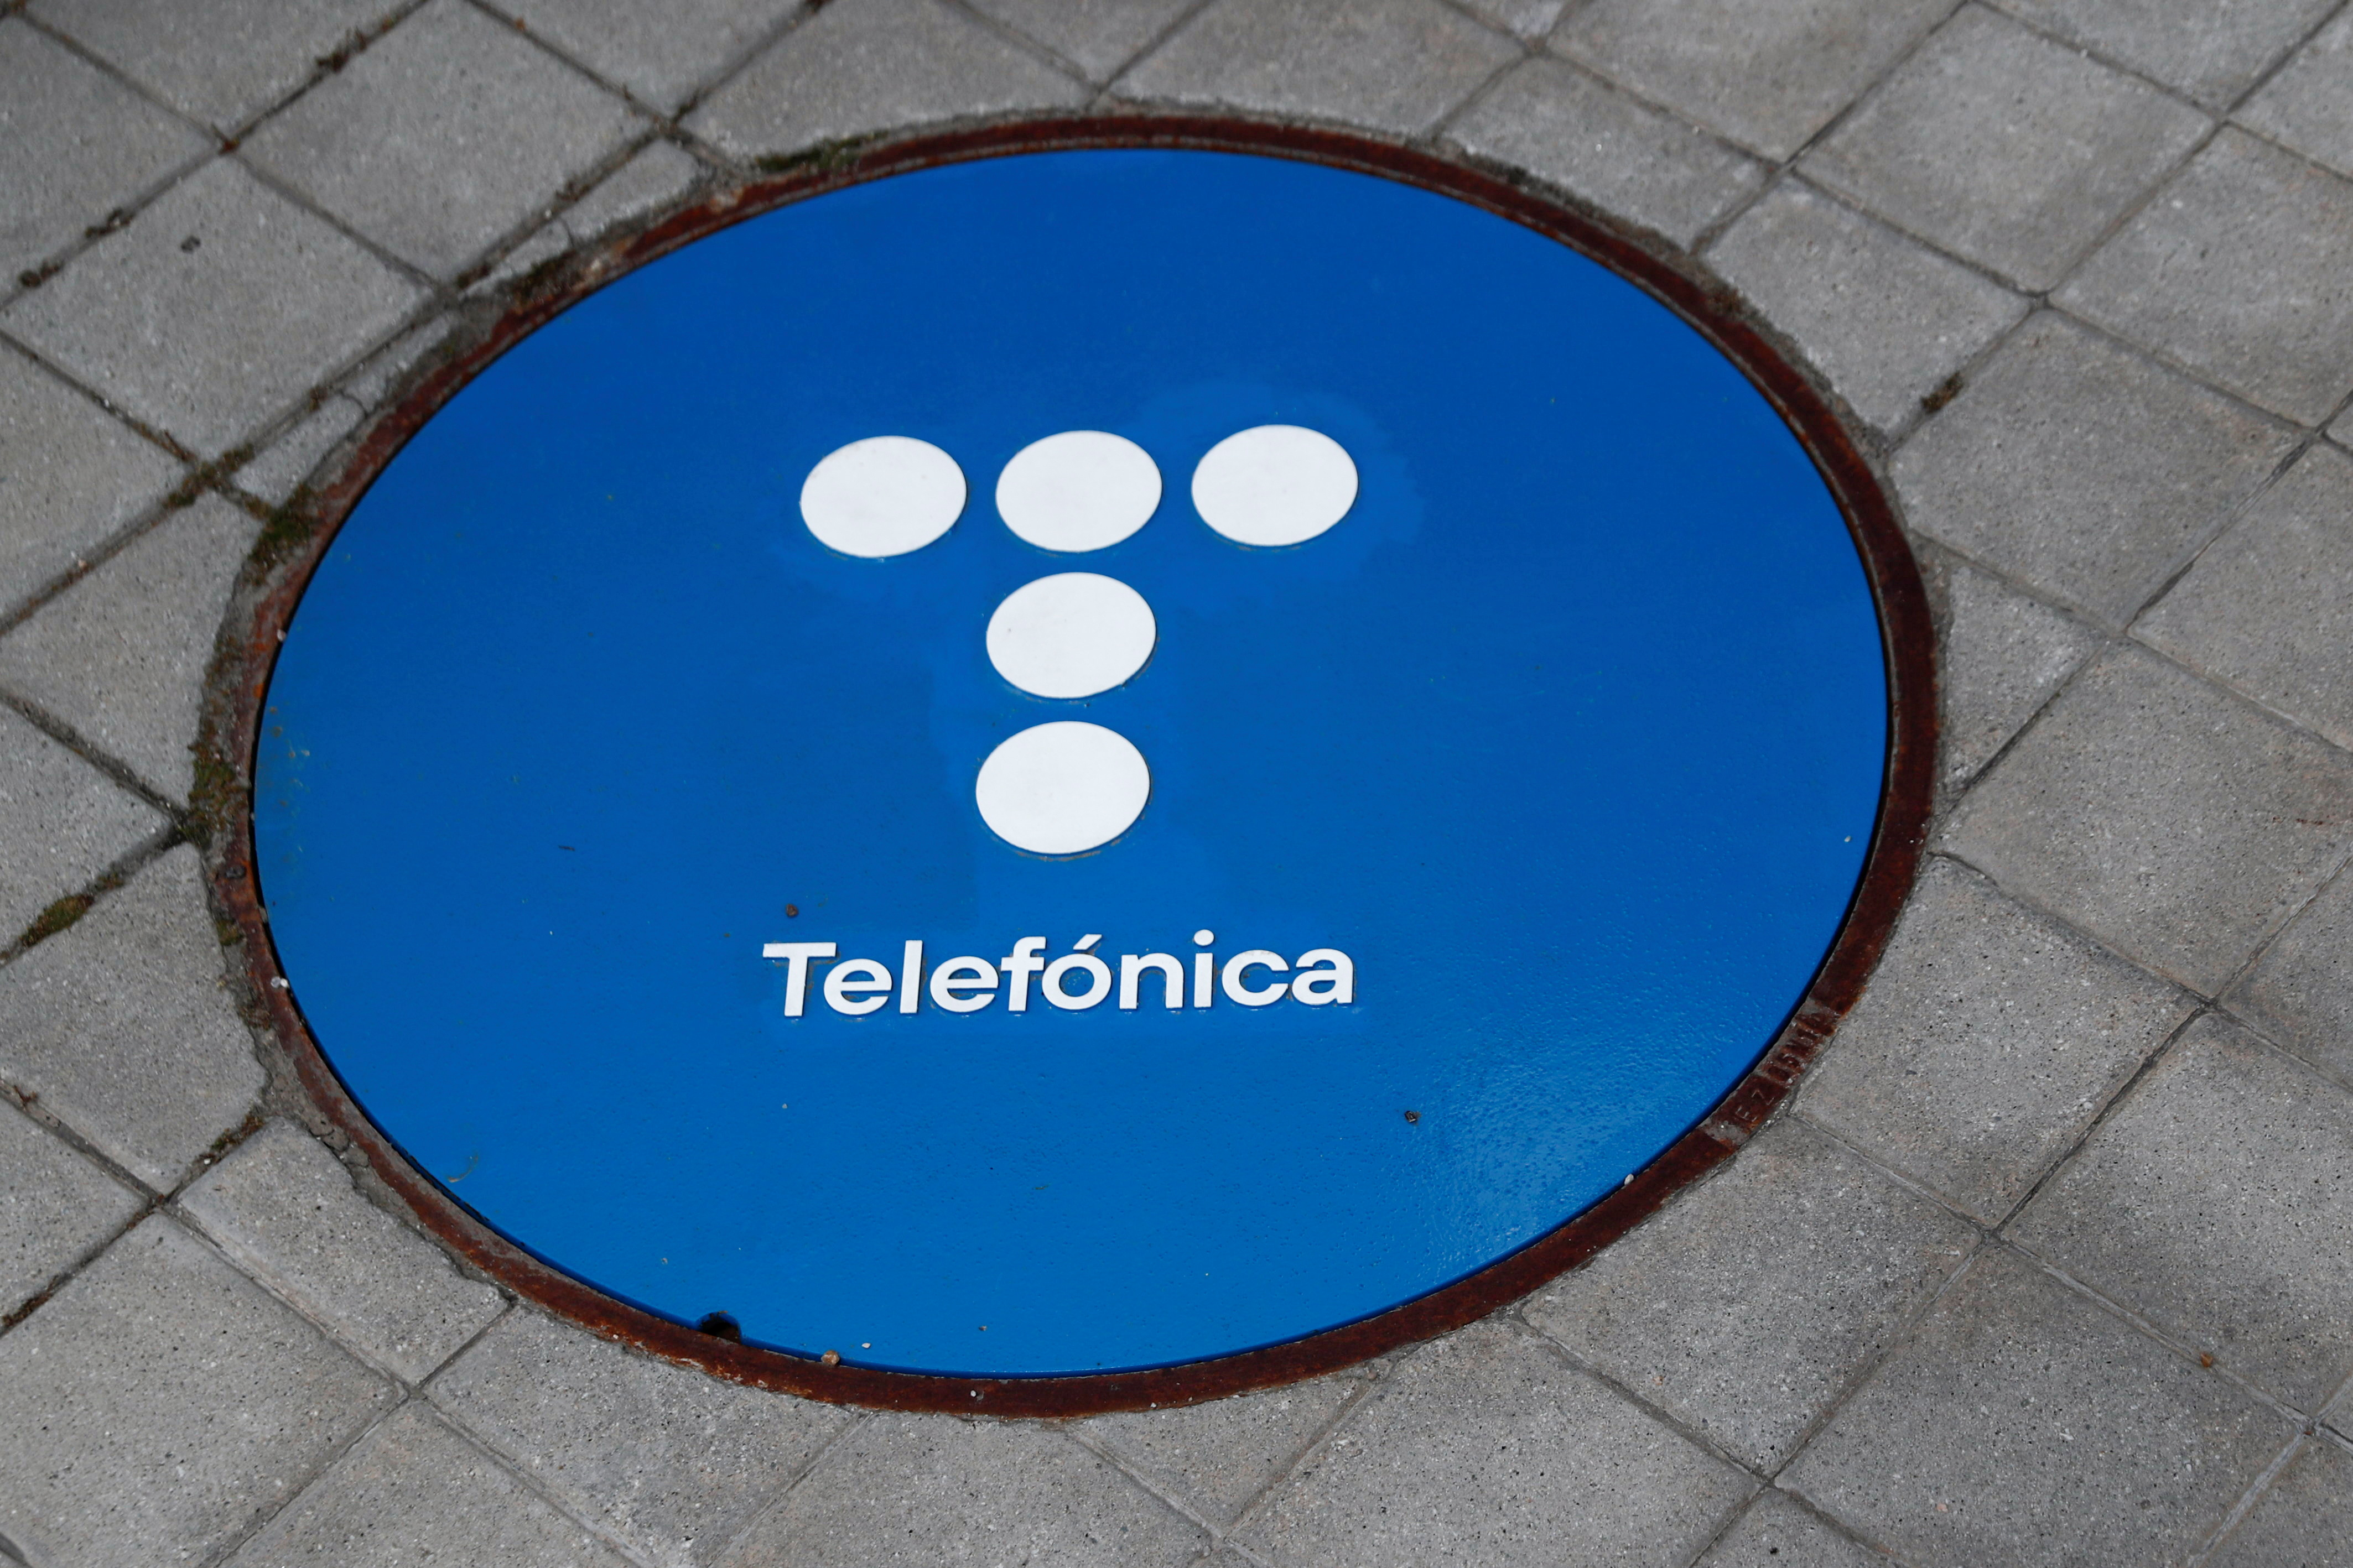 The logo of Spanish Telecom company Telefonica is seen on a sewage cover outside its headquarters in Madrid, Spain, May 12, 2021. REUTERS/Sergio Perez